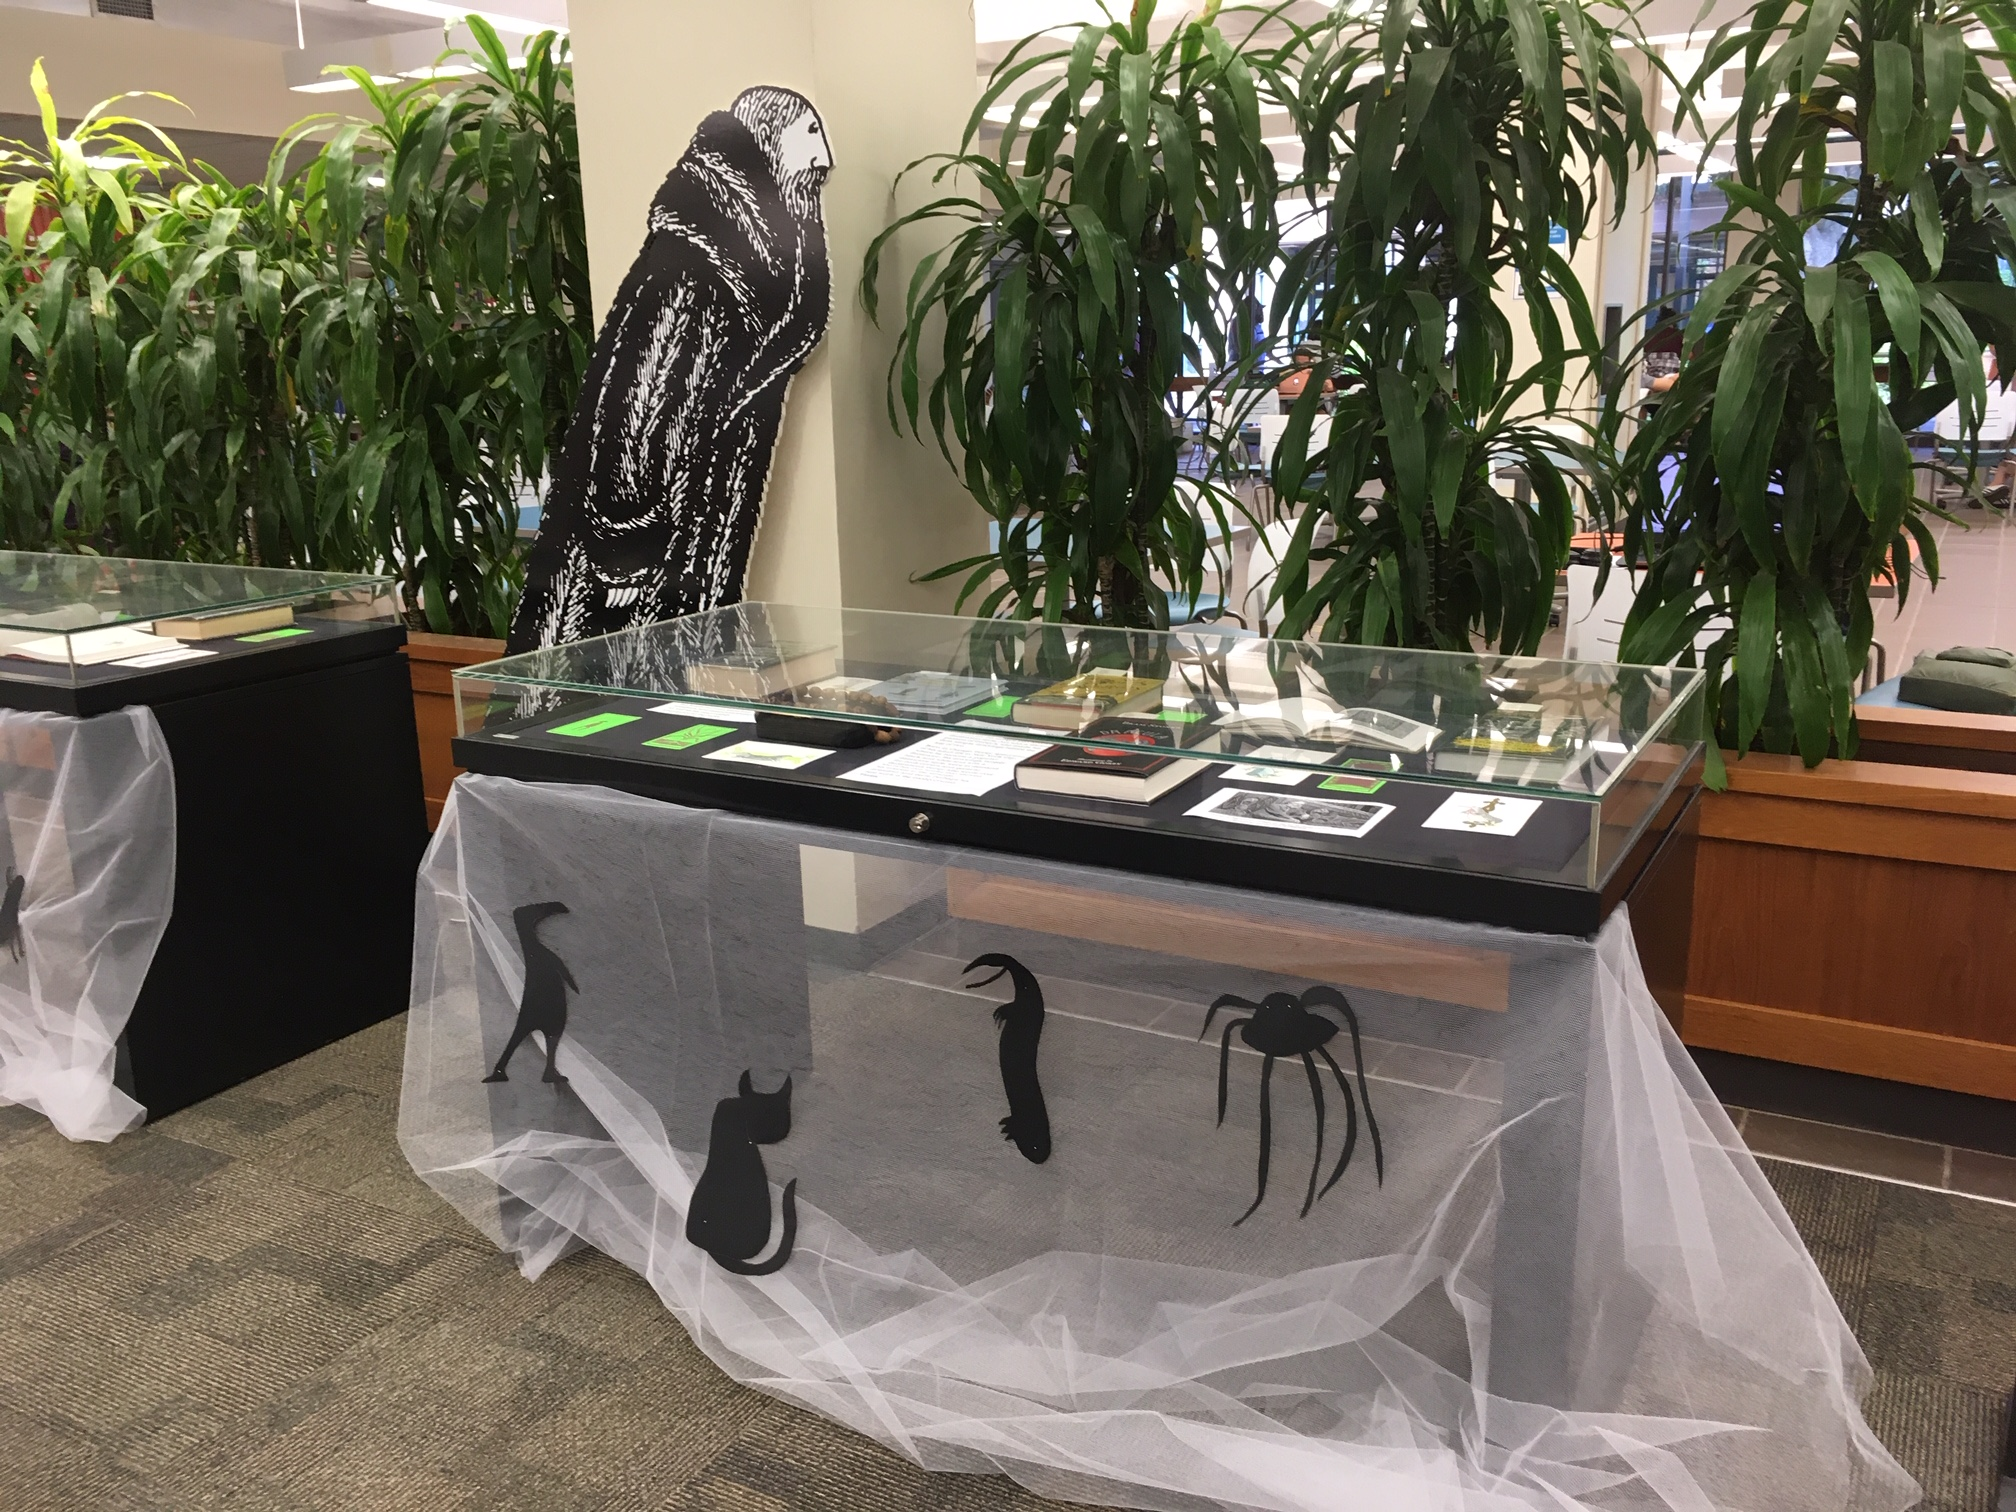 Gorey Halloween Exhibit